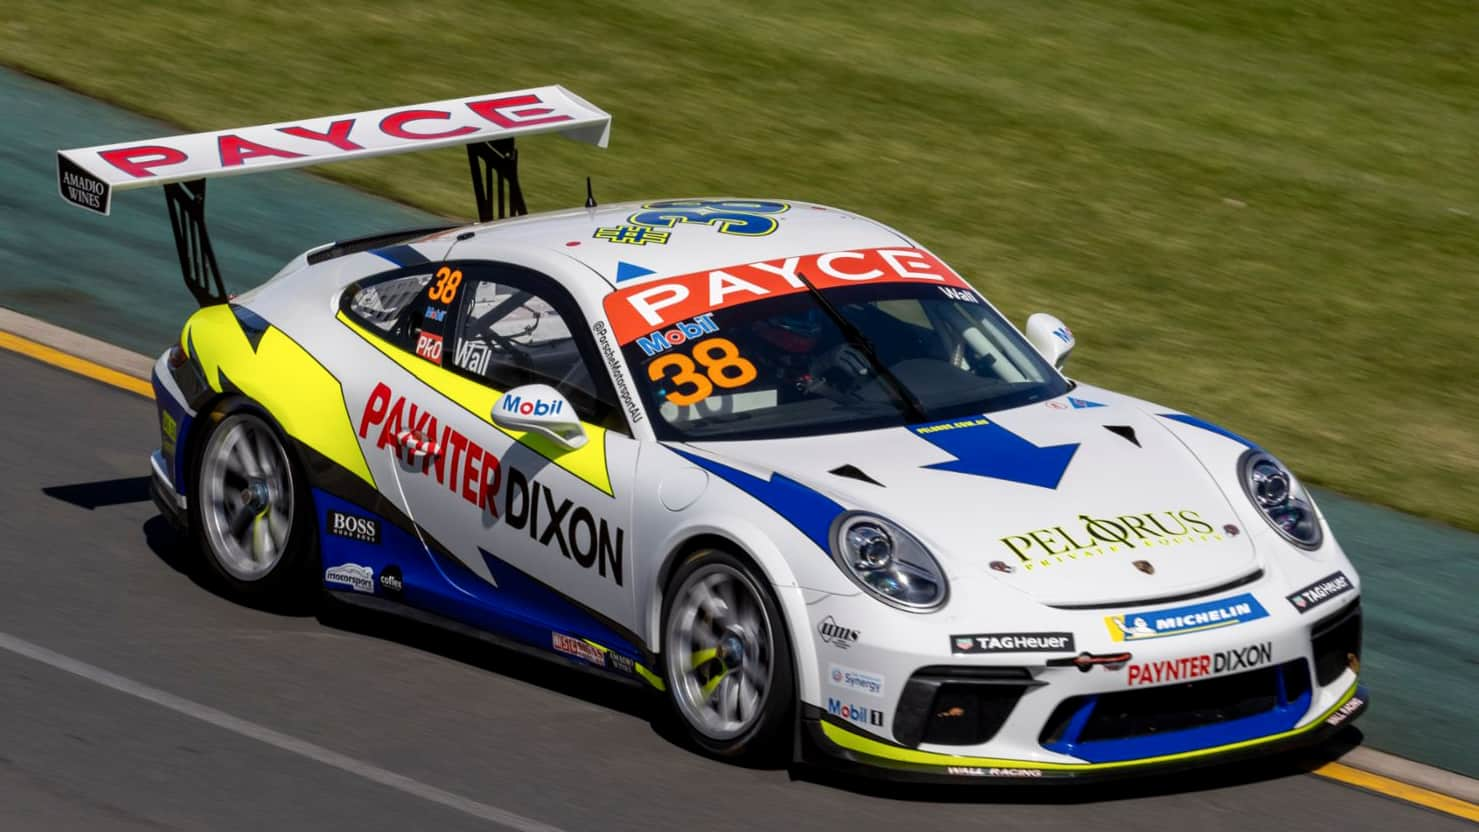 Paynter Dixon announced as Title Partner for 2021 Carrera Cup